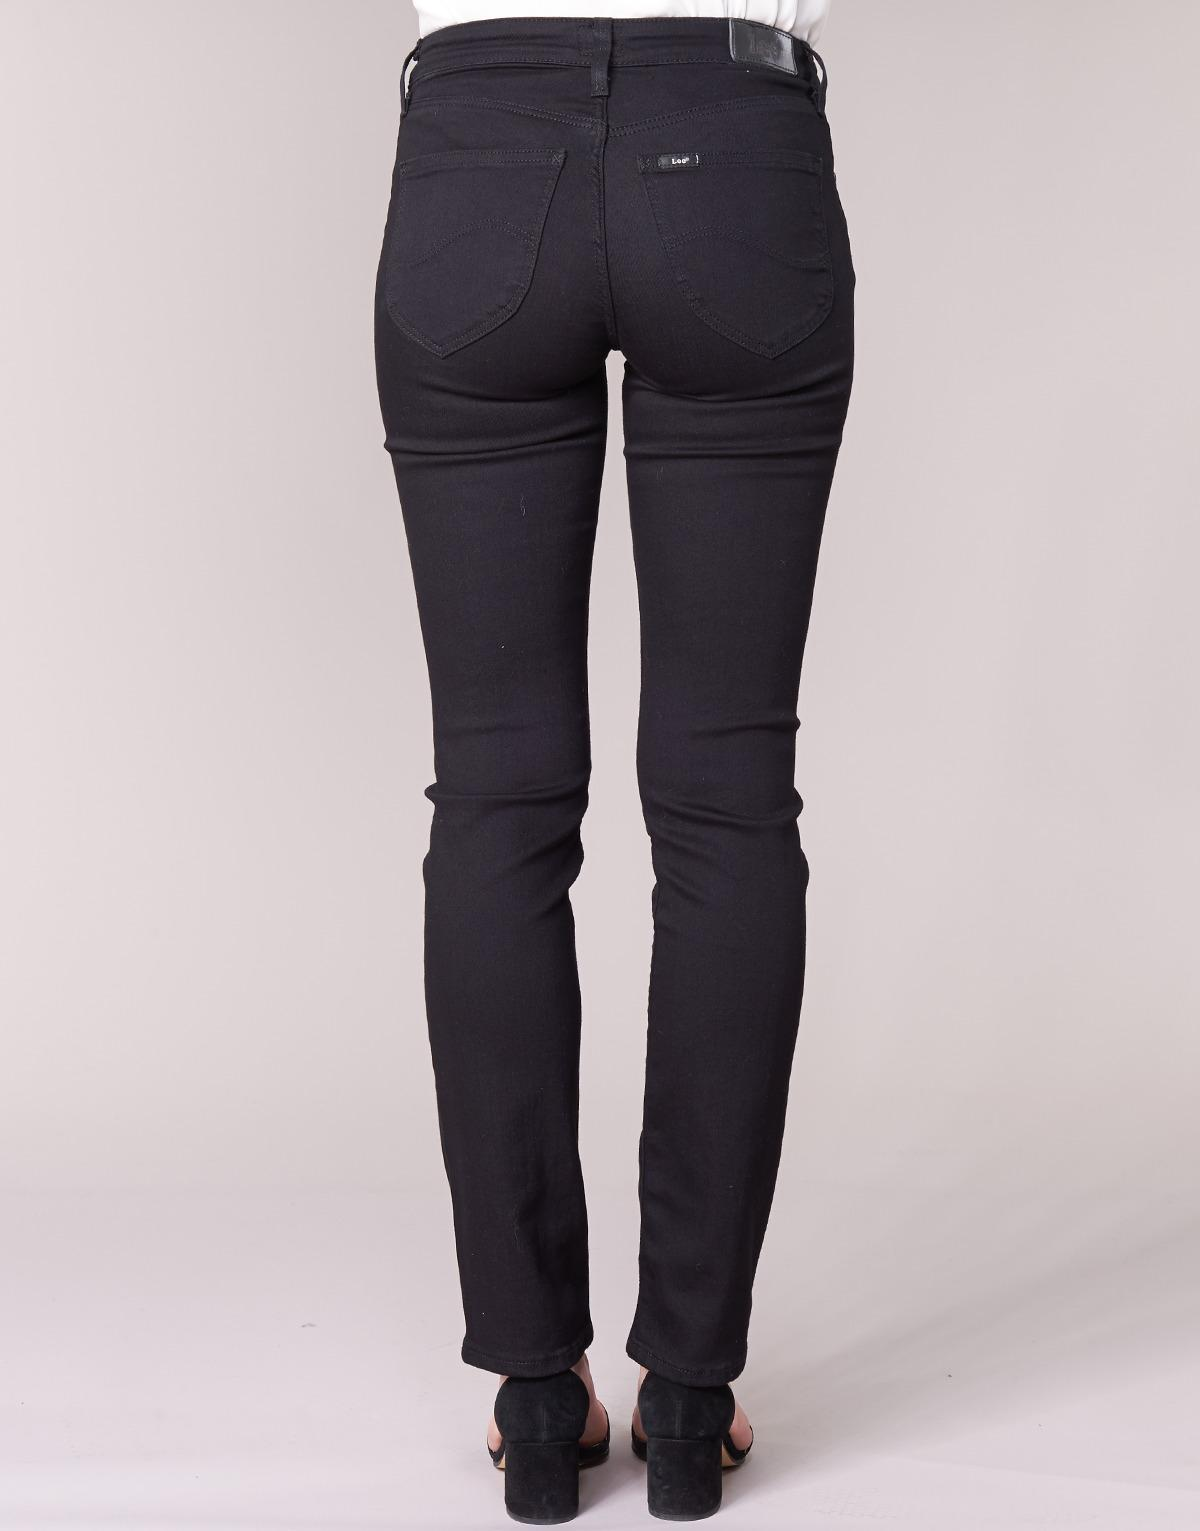 Lee Jeans Denim Marion Straight Women's Jeans In Black - Save 23%